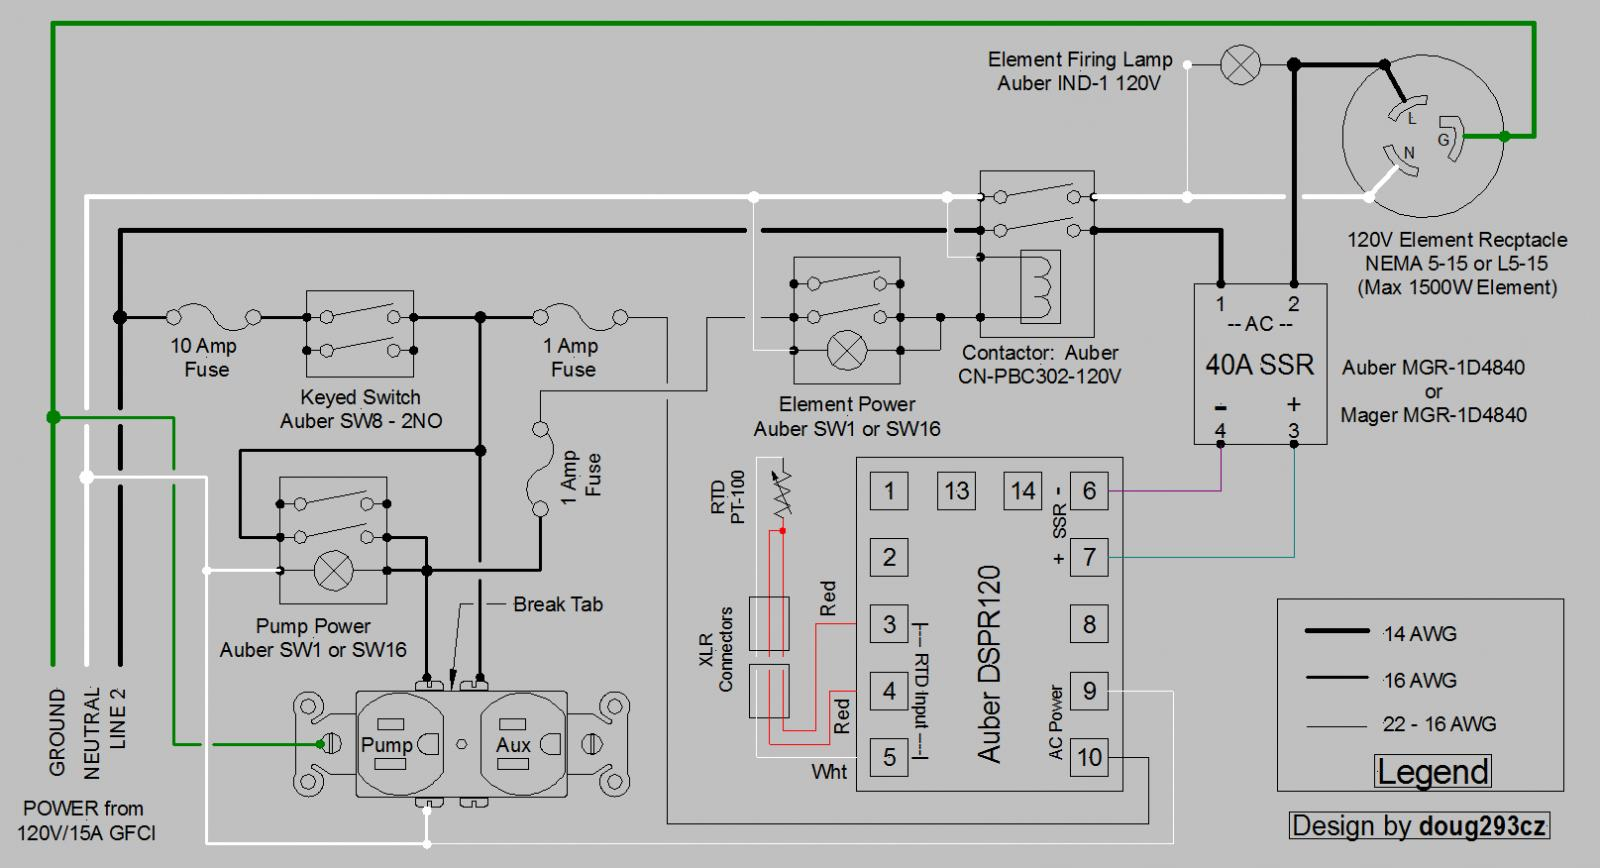 Ssr Wiring Diagram For Controller Will Be A Thing 125 Amazing Pid 110v Switch Ideas Best Image 2013 Pilot Radio Maf